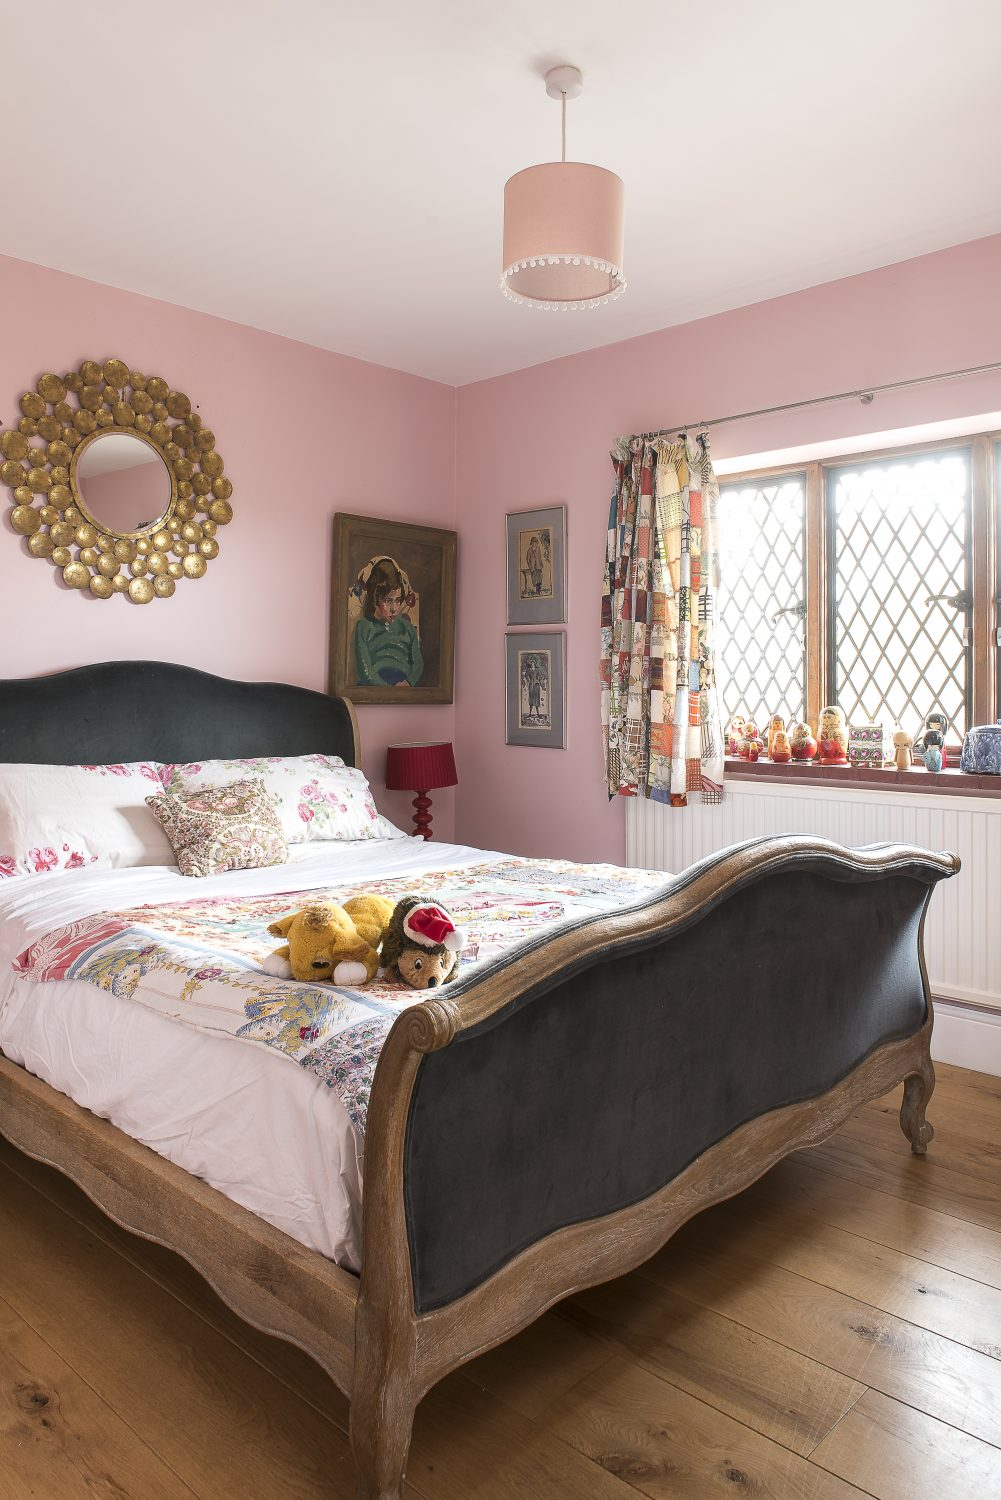 In the grandchildren's bedroom kitsch paintings are hung in groups on the walls and retro toys and objects style the furniture that Clare found in a Hastings junk shop